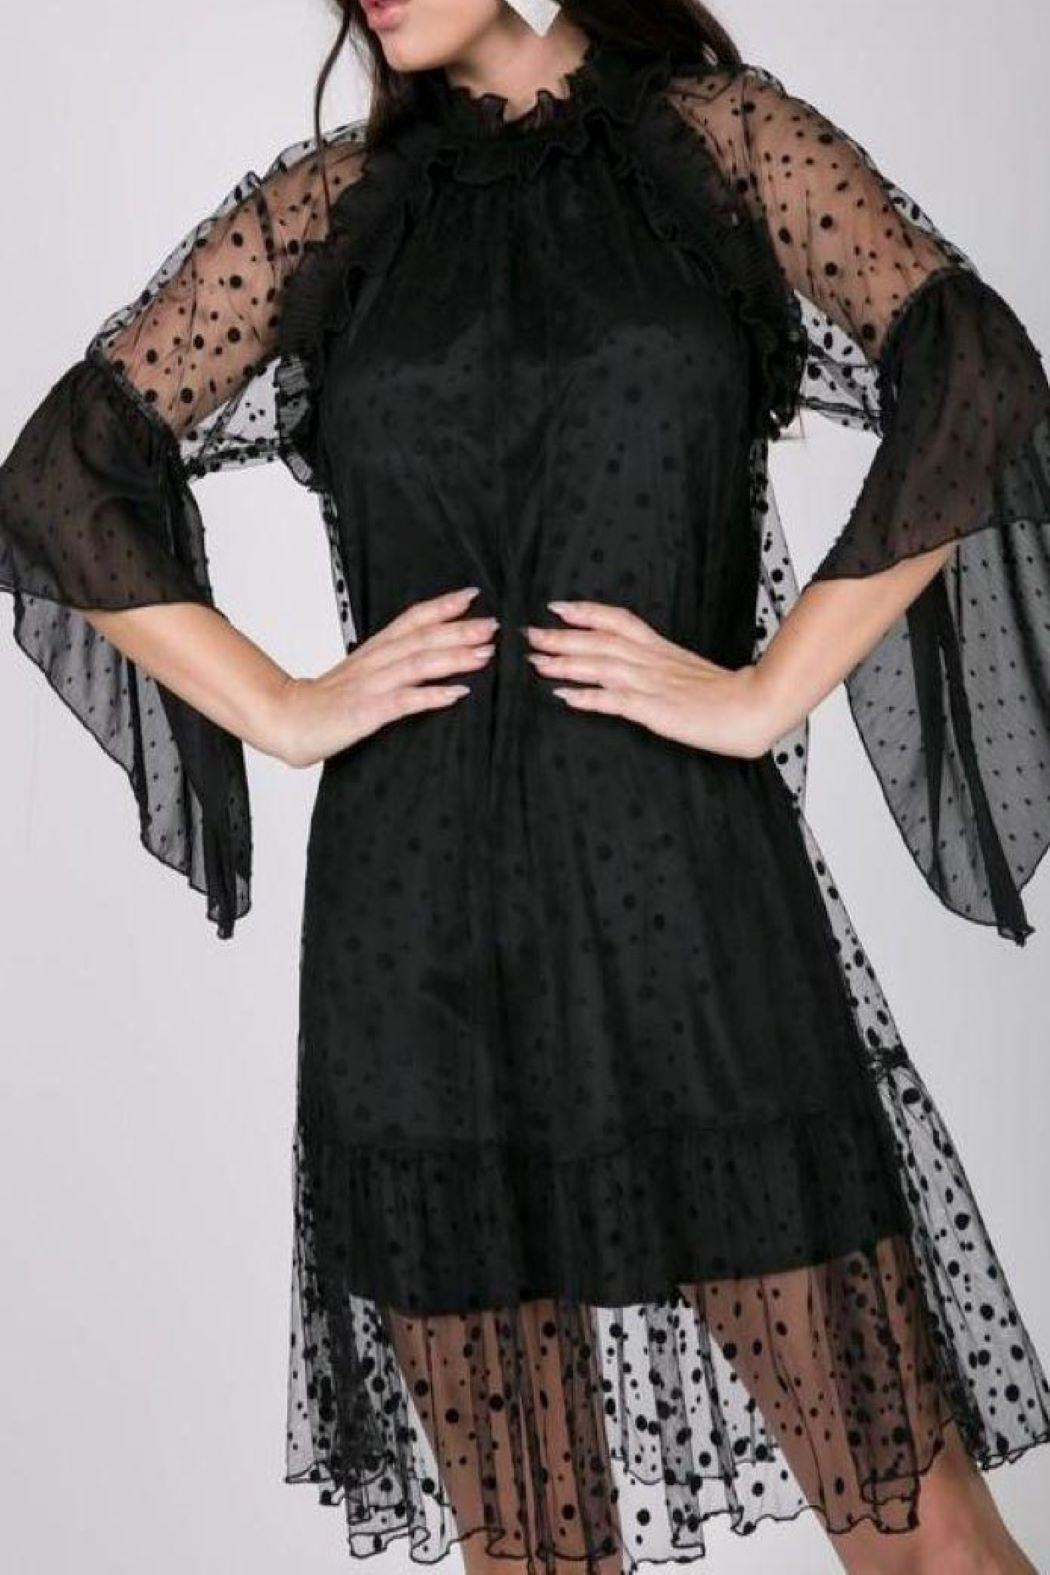 cq by cq Flirty Black Dress - Front Cropped Image